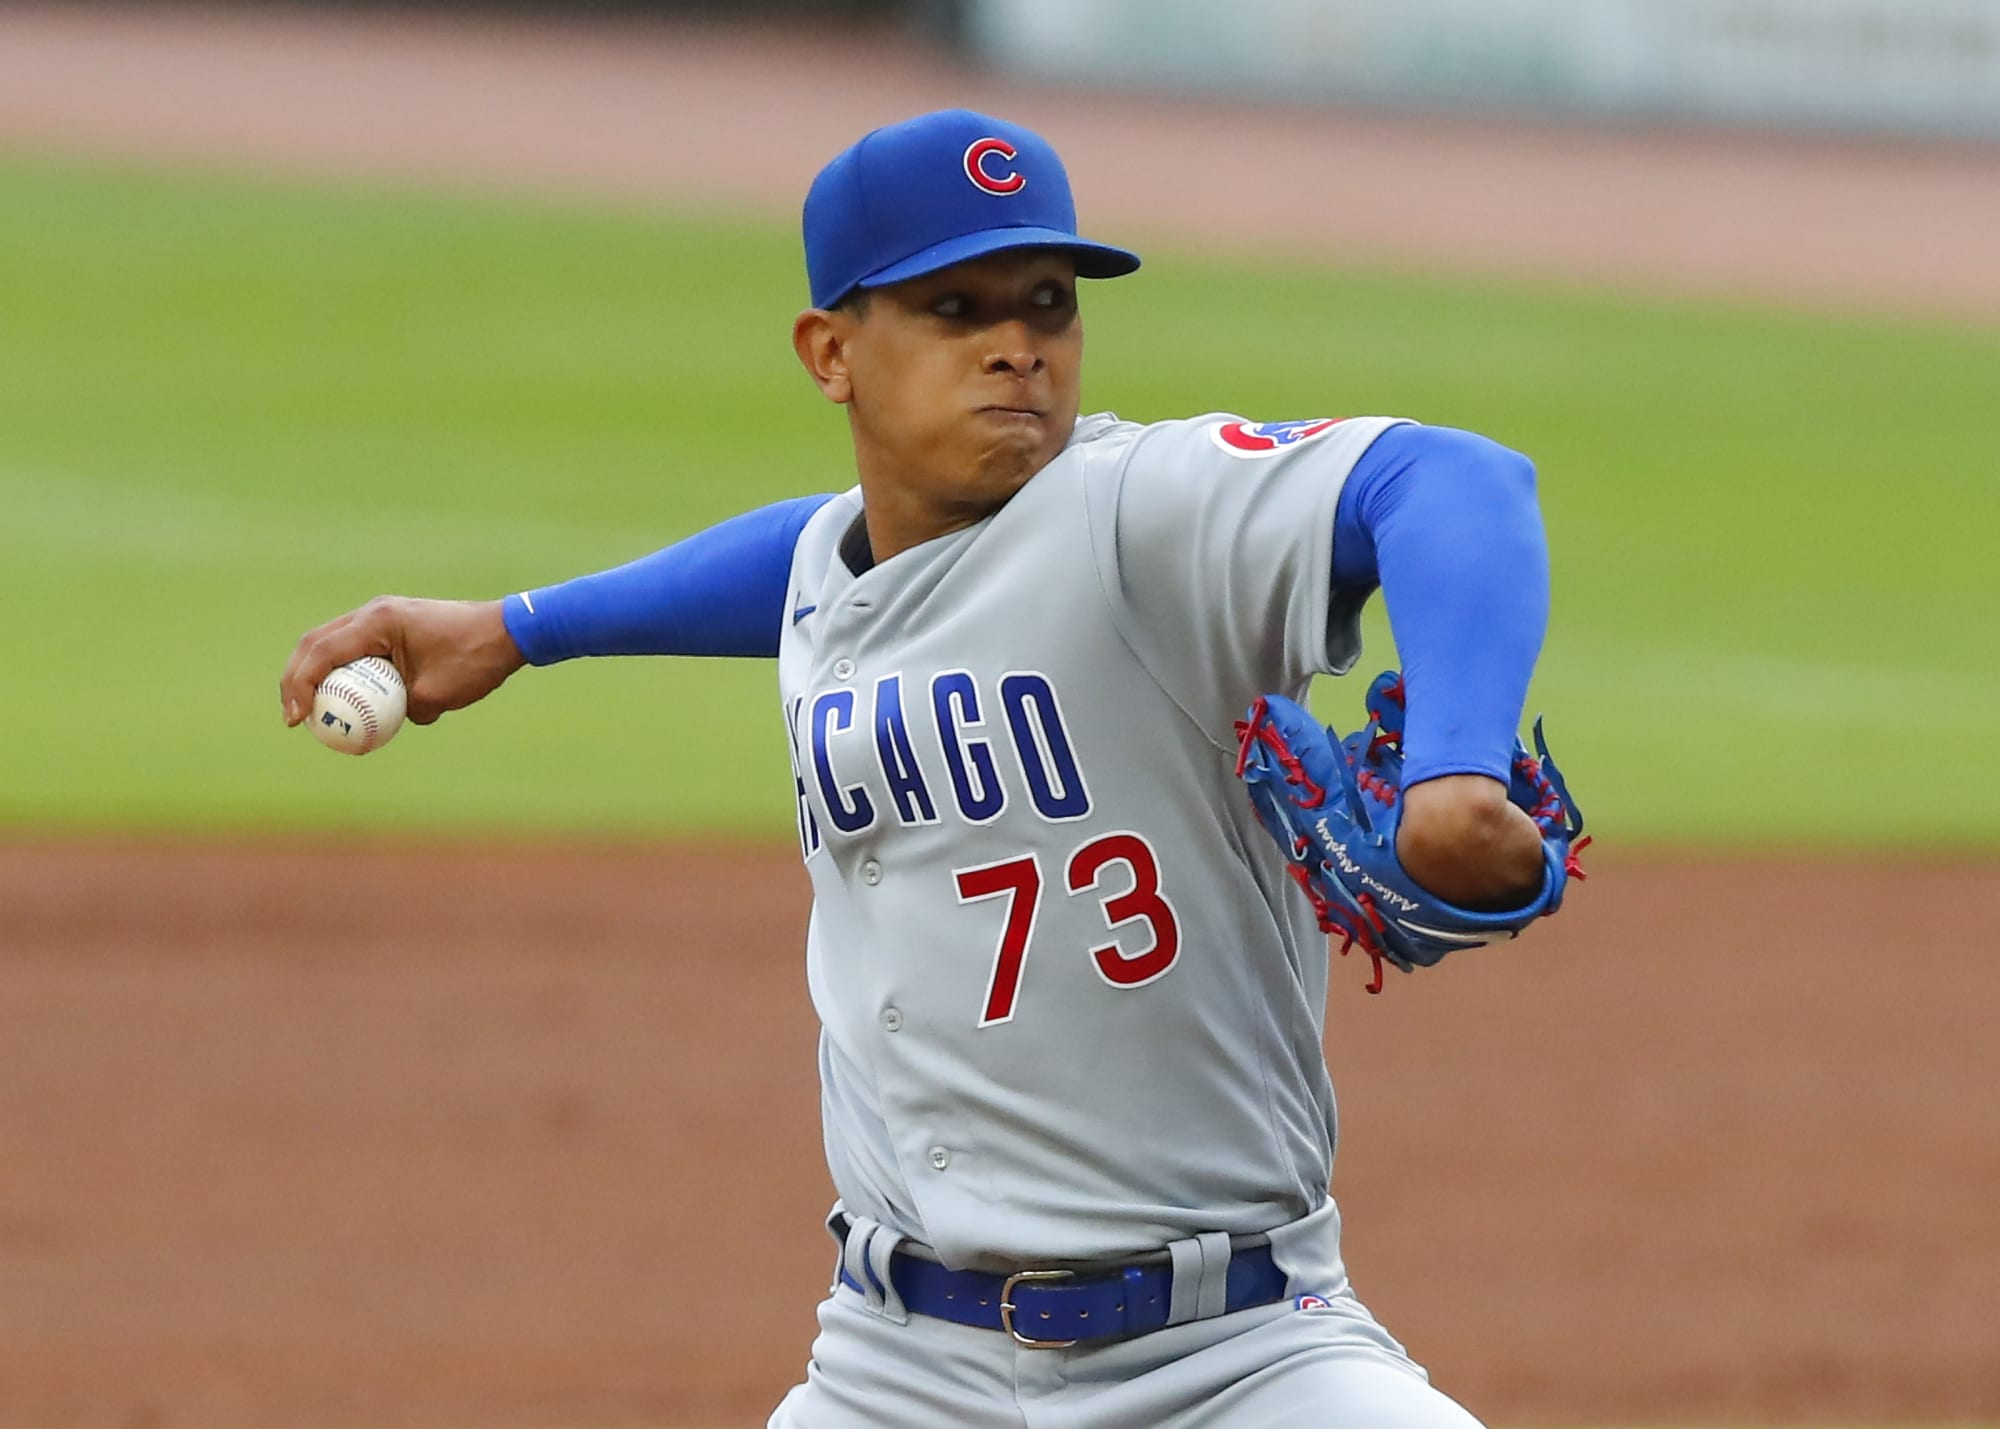 Chicago Cubs: The Adbert Alzolay breakout is finally happening